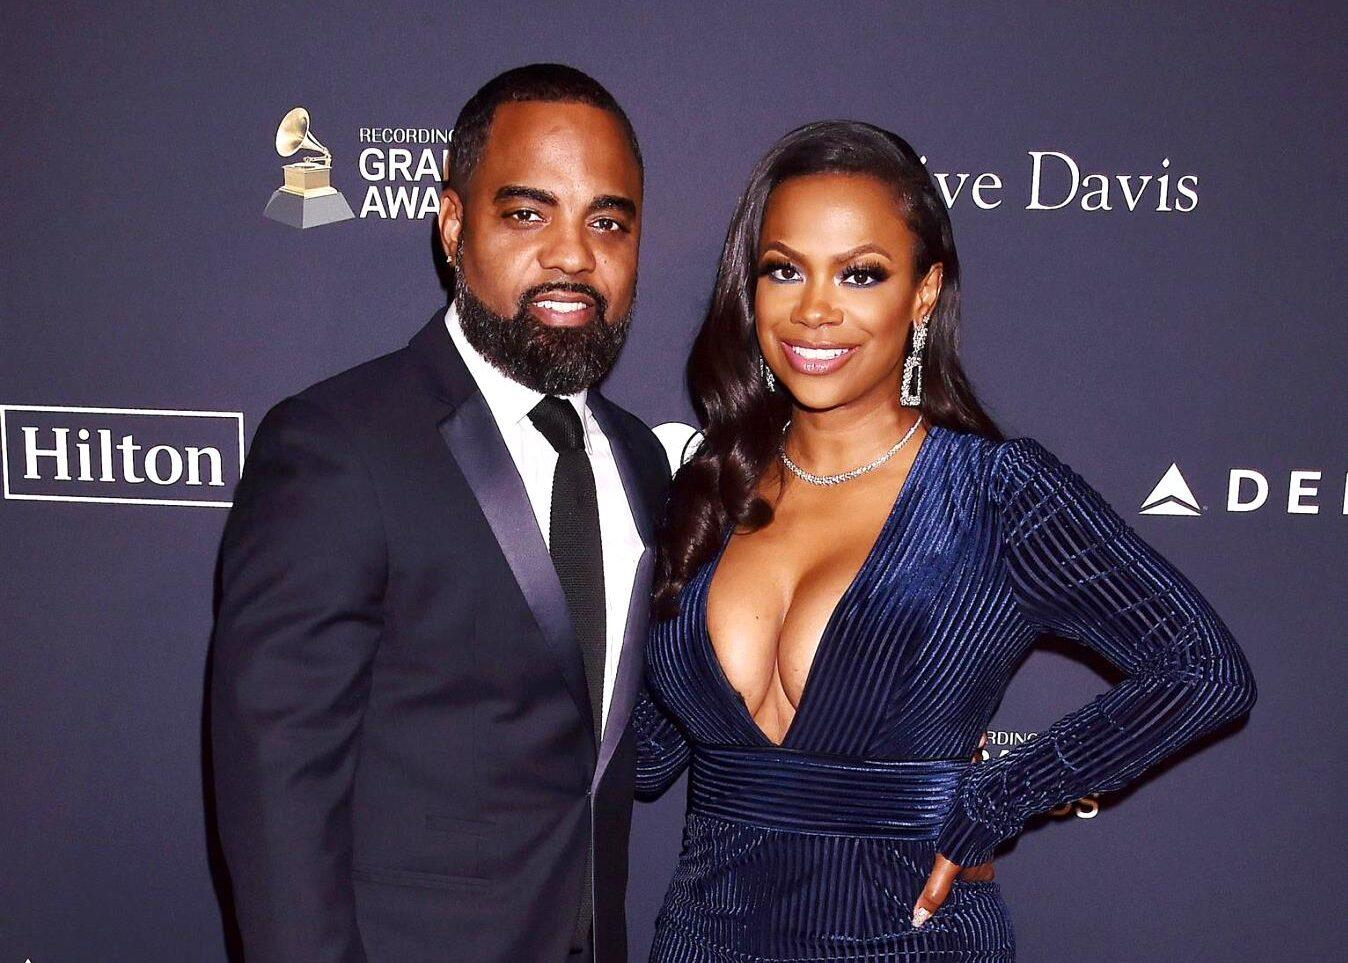 Kandi Burruss And Todd Tucker Have A Surprise For Fans - Check Out Their Date Night Tomorrow